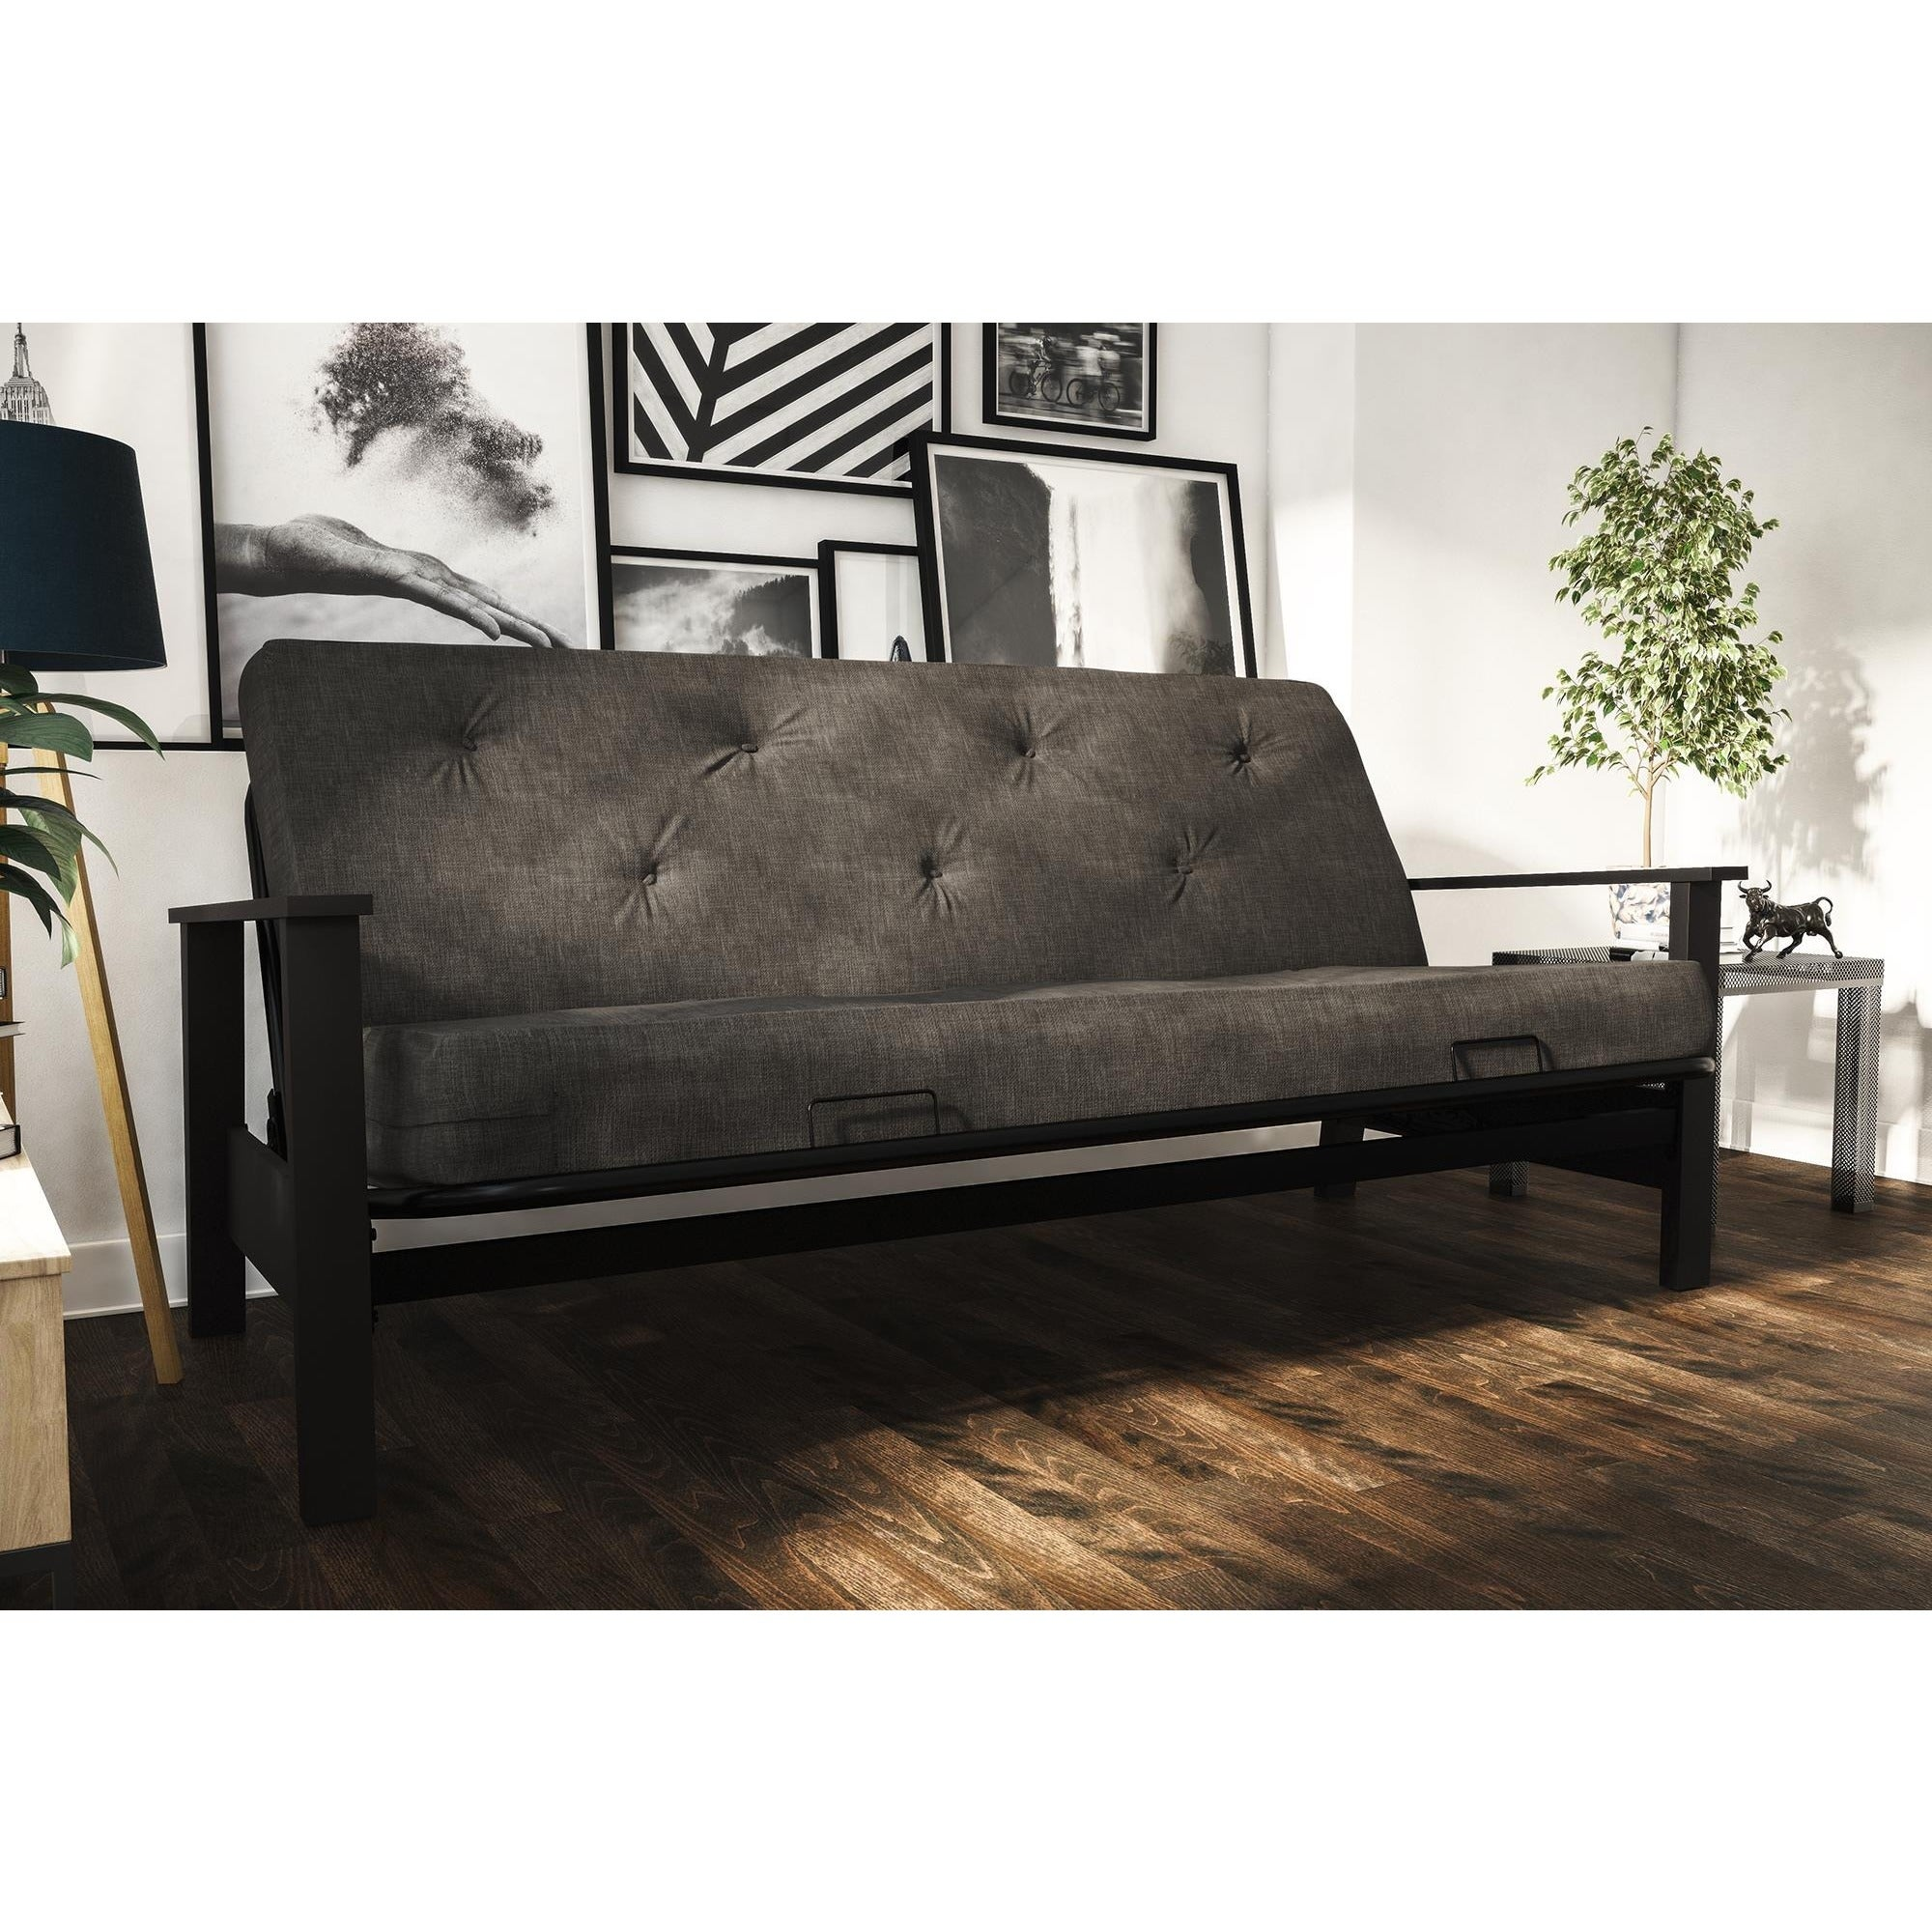 Avenue Greene Bria Wood Arm Futon With 6 Inch Coil Linen Mattress Free Shipping Today Com 13000999